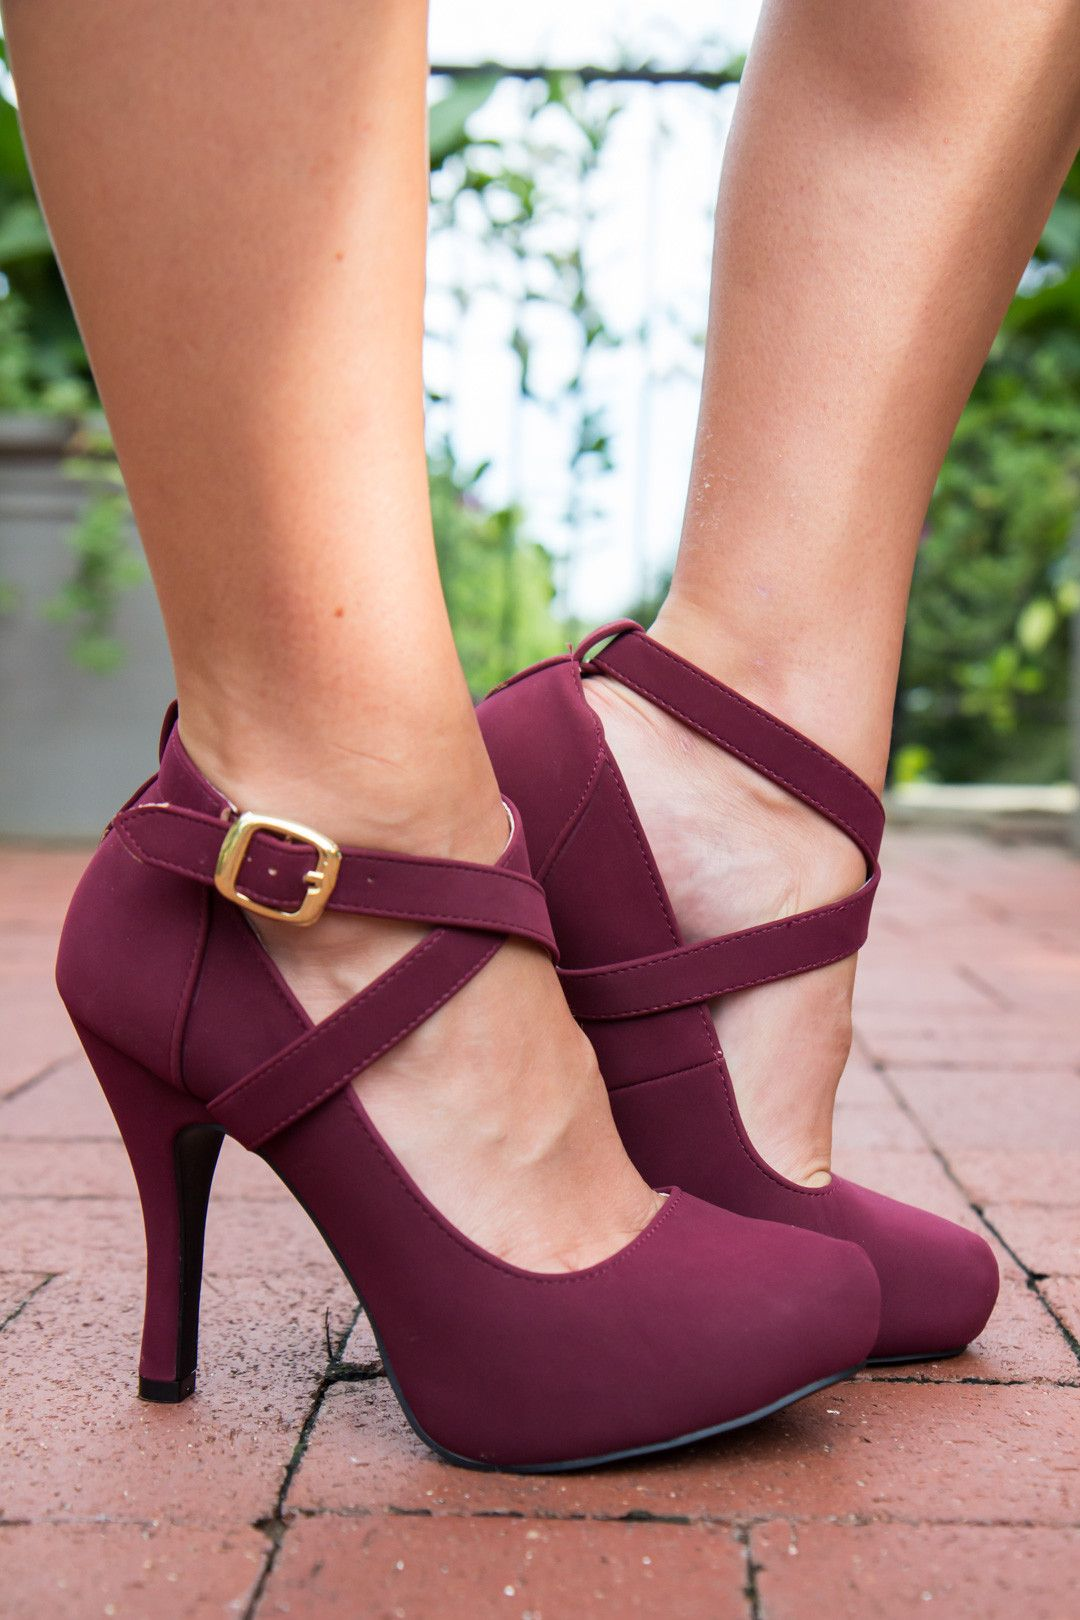 82a011c3ea80 Sassy Strappy Shoes - Wine Vendor  Athena AttireType  ShoesPrice  37.00  These closed toe heels add an element of style to any dress!